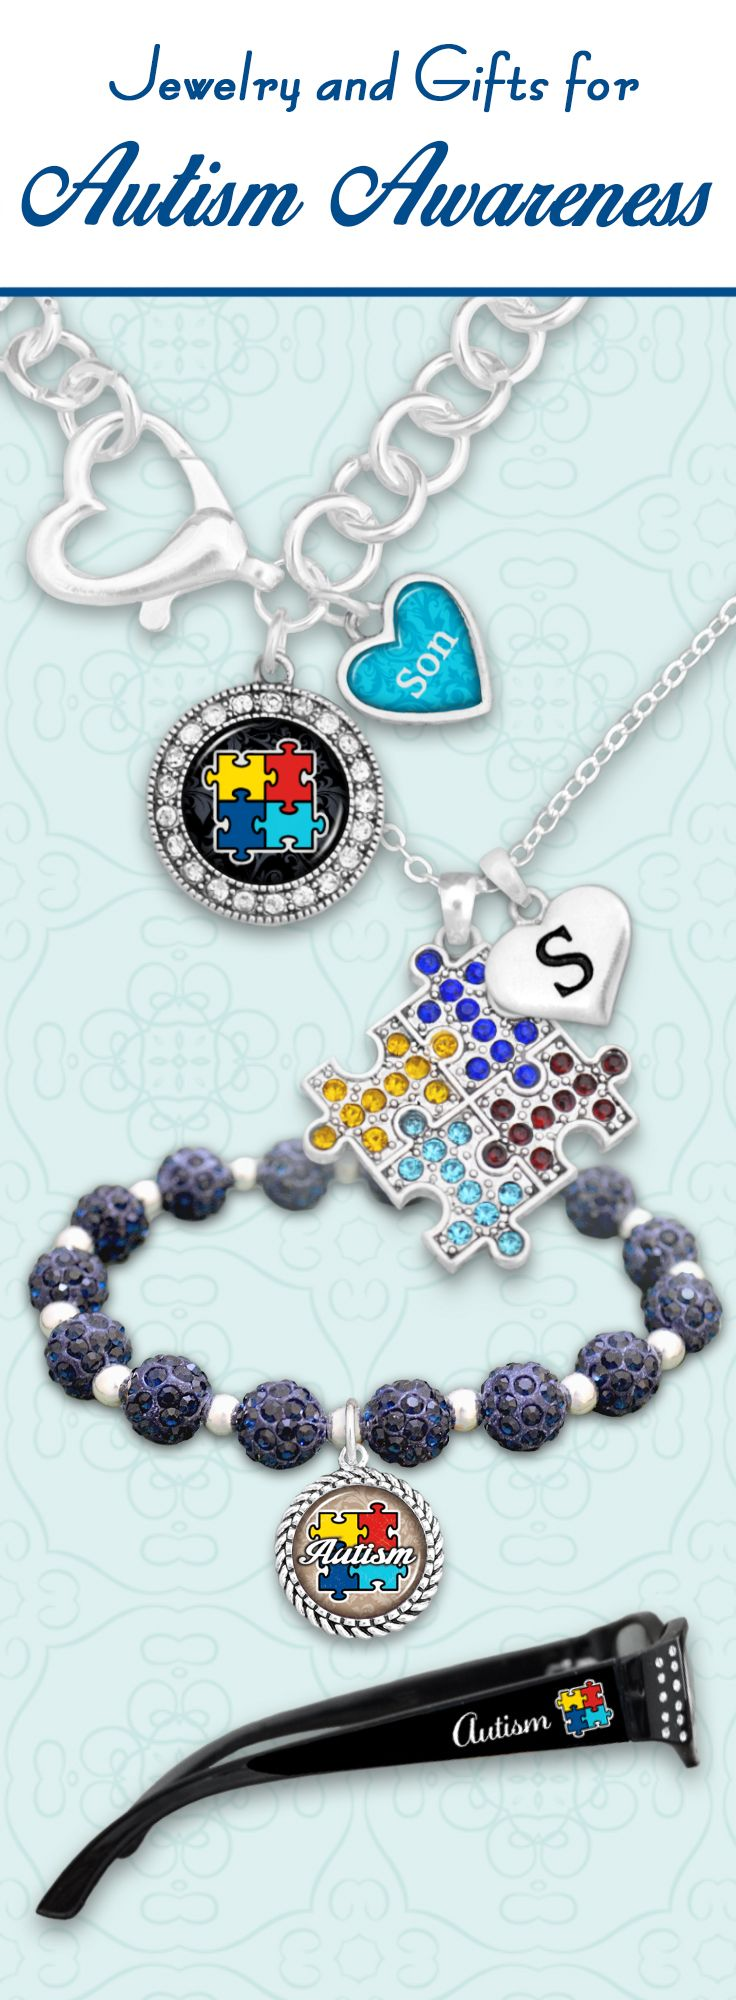 Custom items for Autism Awareness - $9.98! Jewelry with custom initials, loved ones, and even custom strength reading glasses! Celebrate your loved ones with our Autism Awareness collection - PLUS 30% of profits from these items is donated Autism research and advocacy!